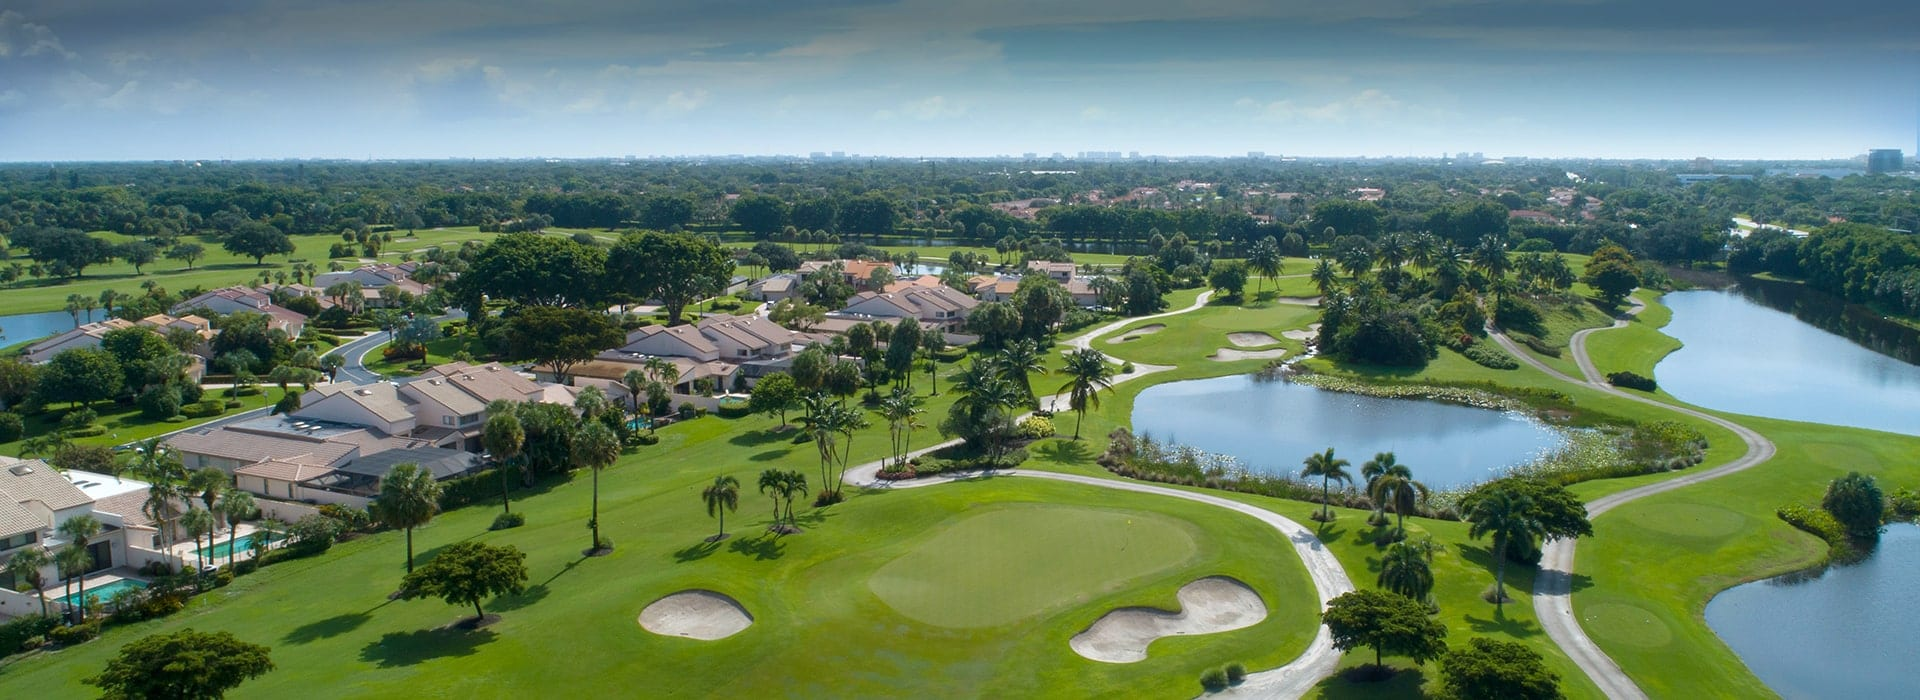 Boca West's Cypress Walk attached townhomes with golf course views